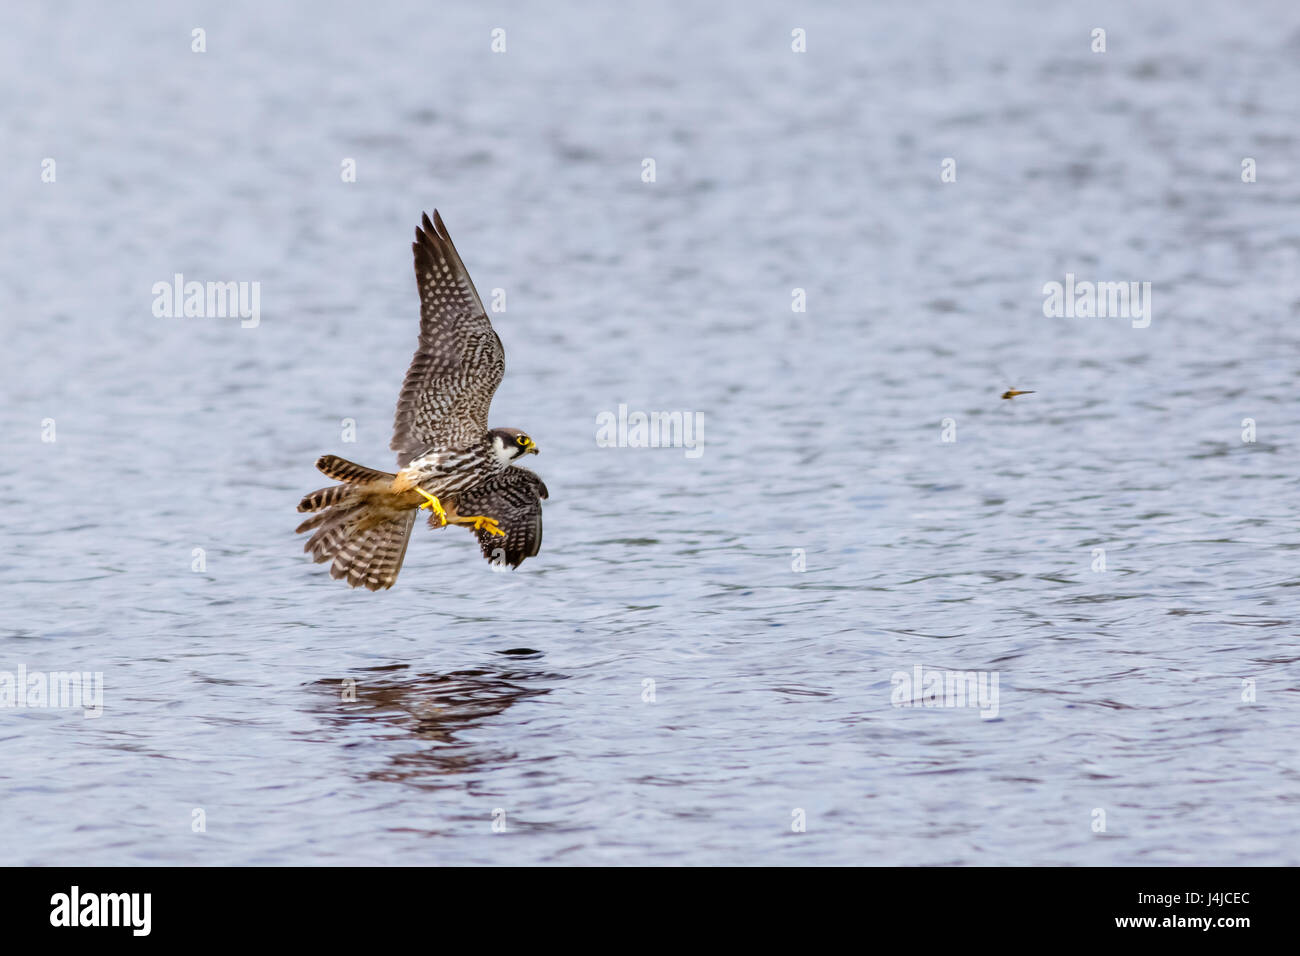 Eurasian Hobby falcon (Falco Subbuteo) flying, in flight, hunting dragonflies dragonfly low over water - Stock Image